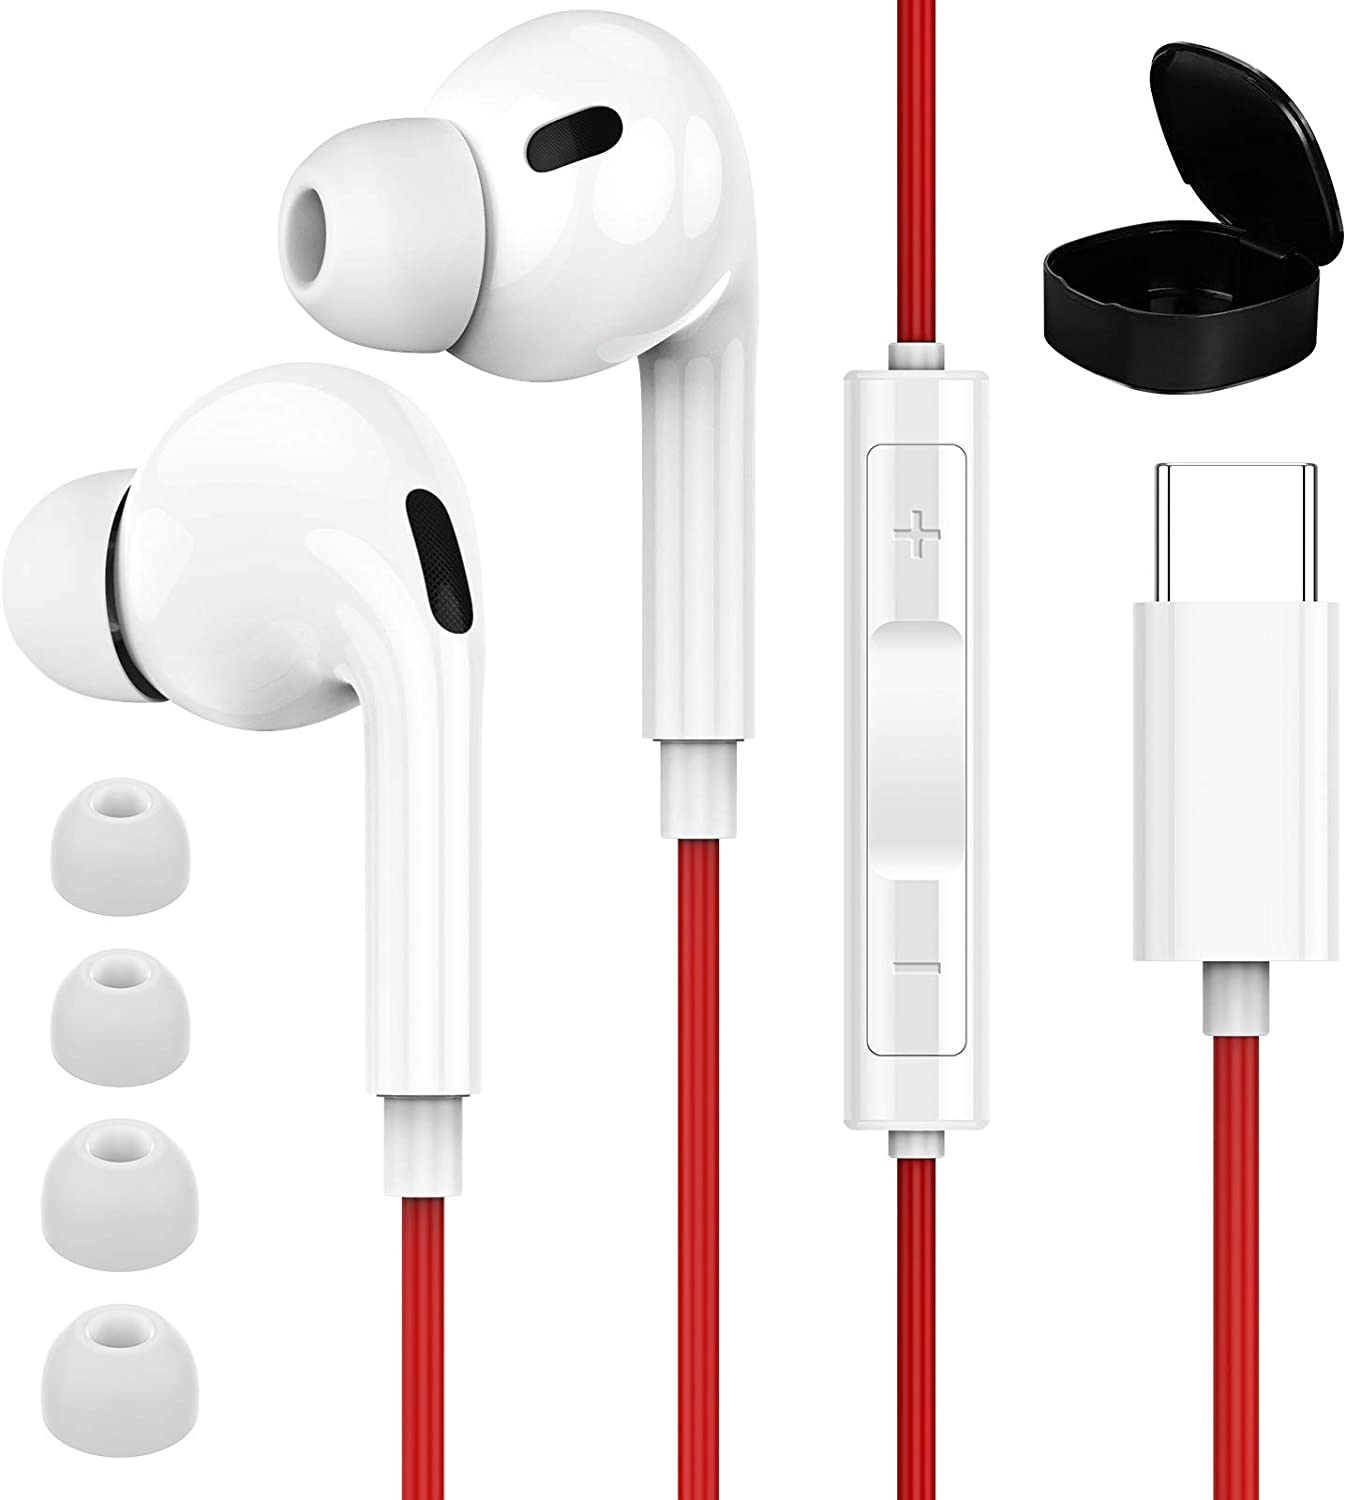 USB C Headphones for Galaxy S21 Ultra, APETOO Type C Earphones Wired in Ear Headphones with Mic Stereo Earbuds for Samsung S20 FE S20 S21 Plus Note 20 Ultra Note 10+ Pixel 5 4 3 2 XL OnePlus 8T